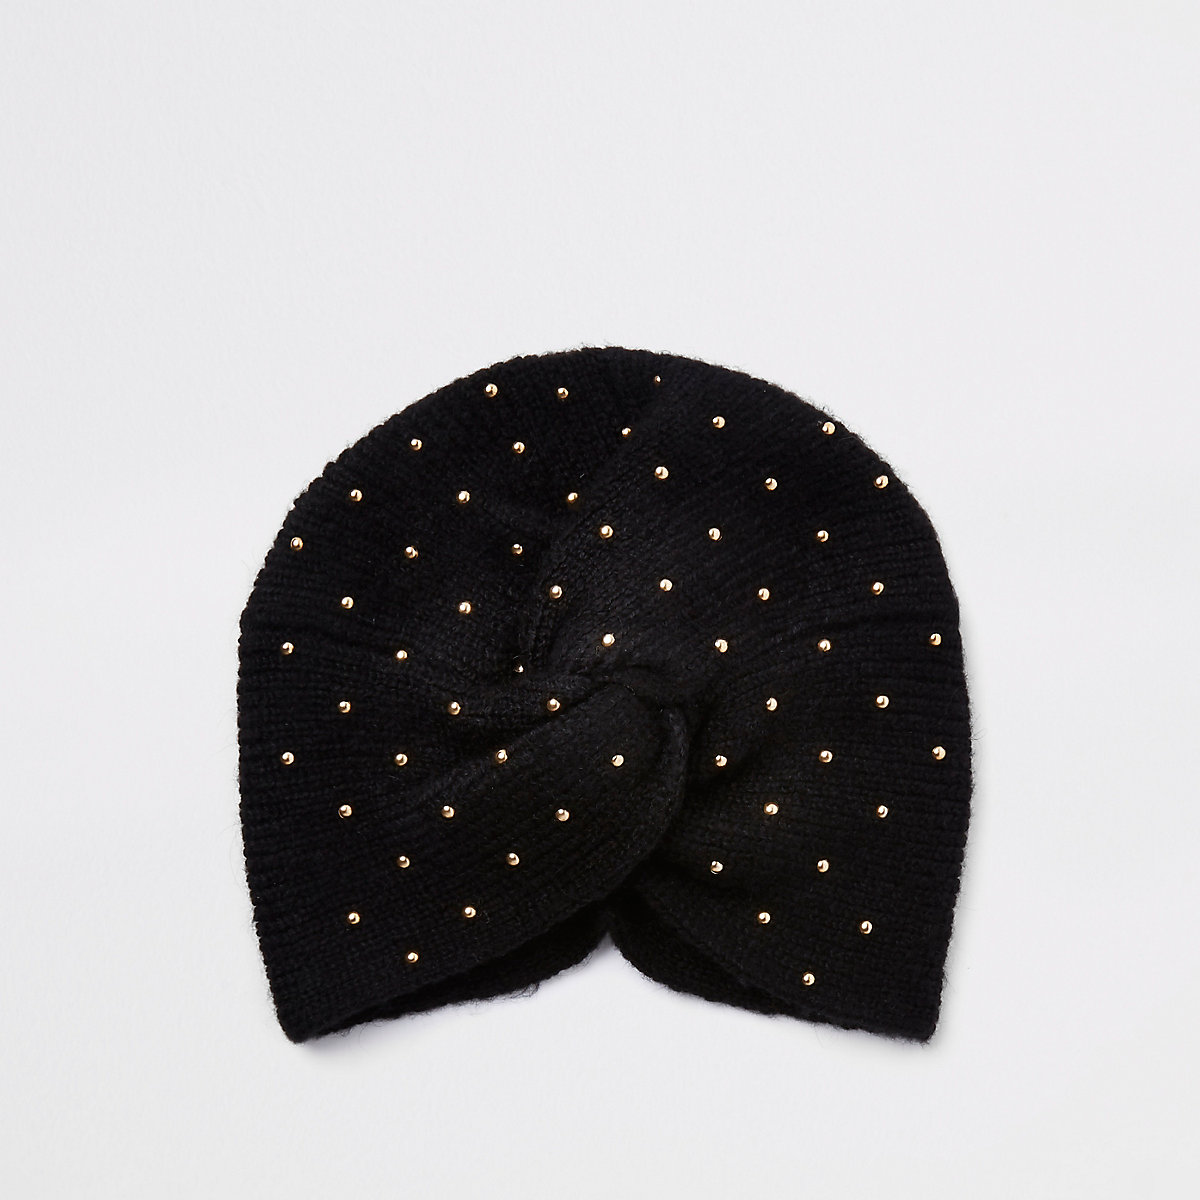 Black stud embellished knit turban headband